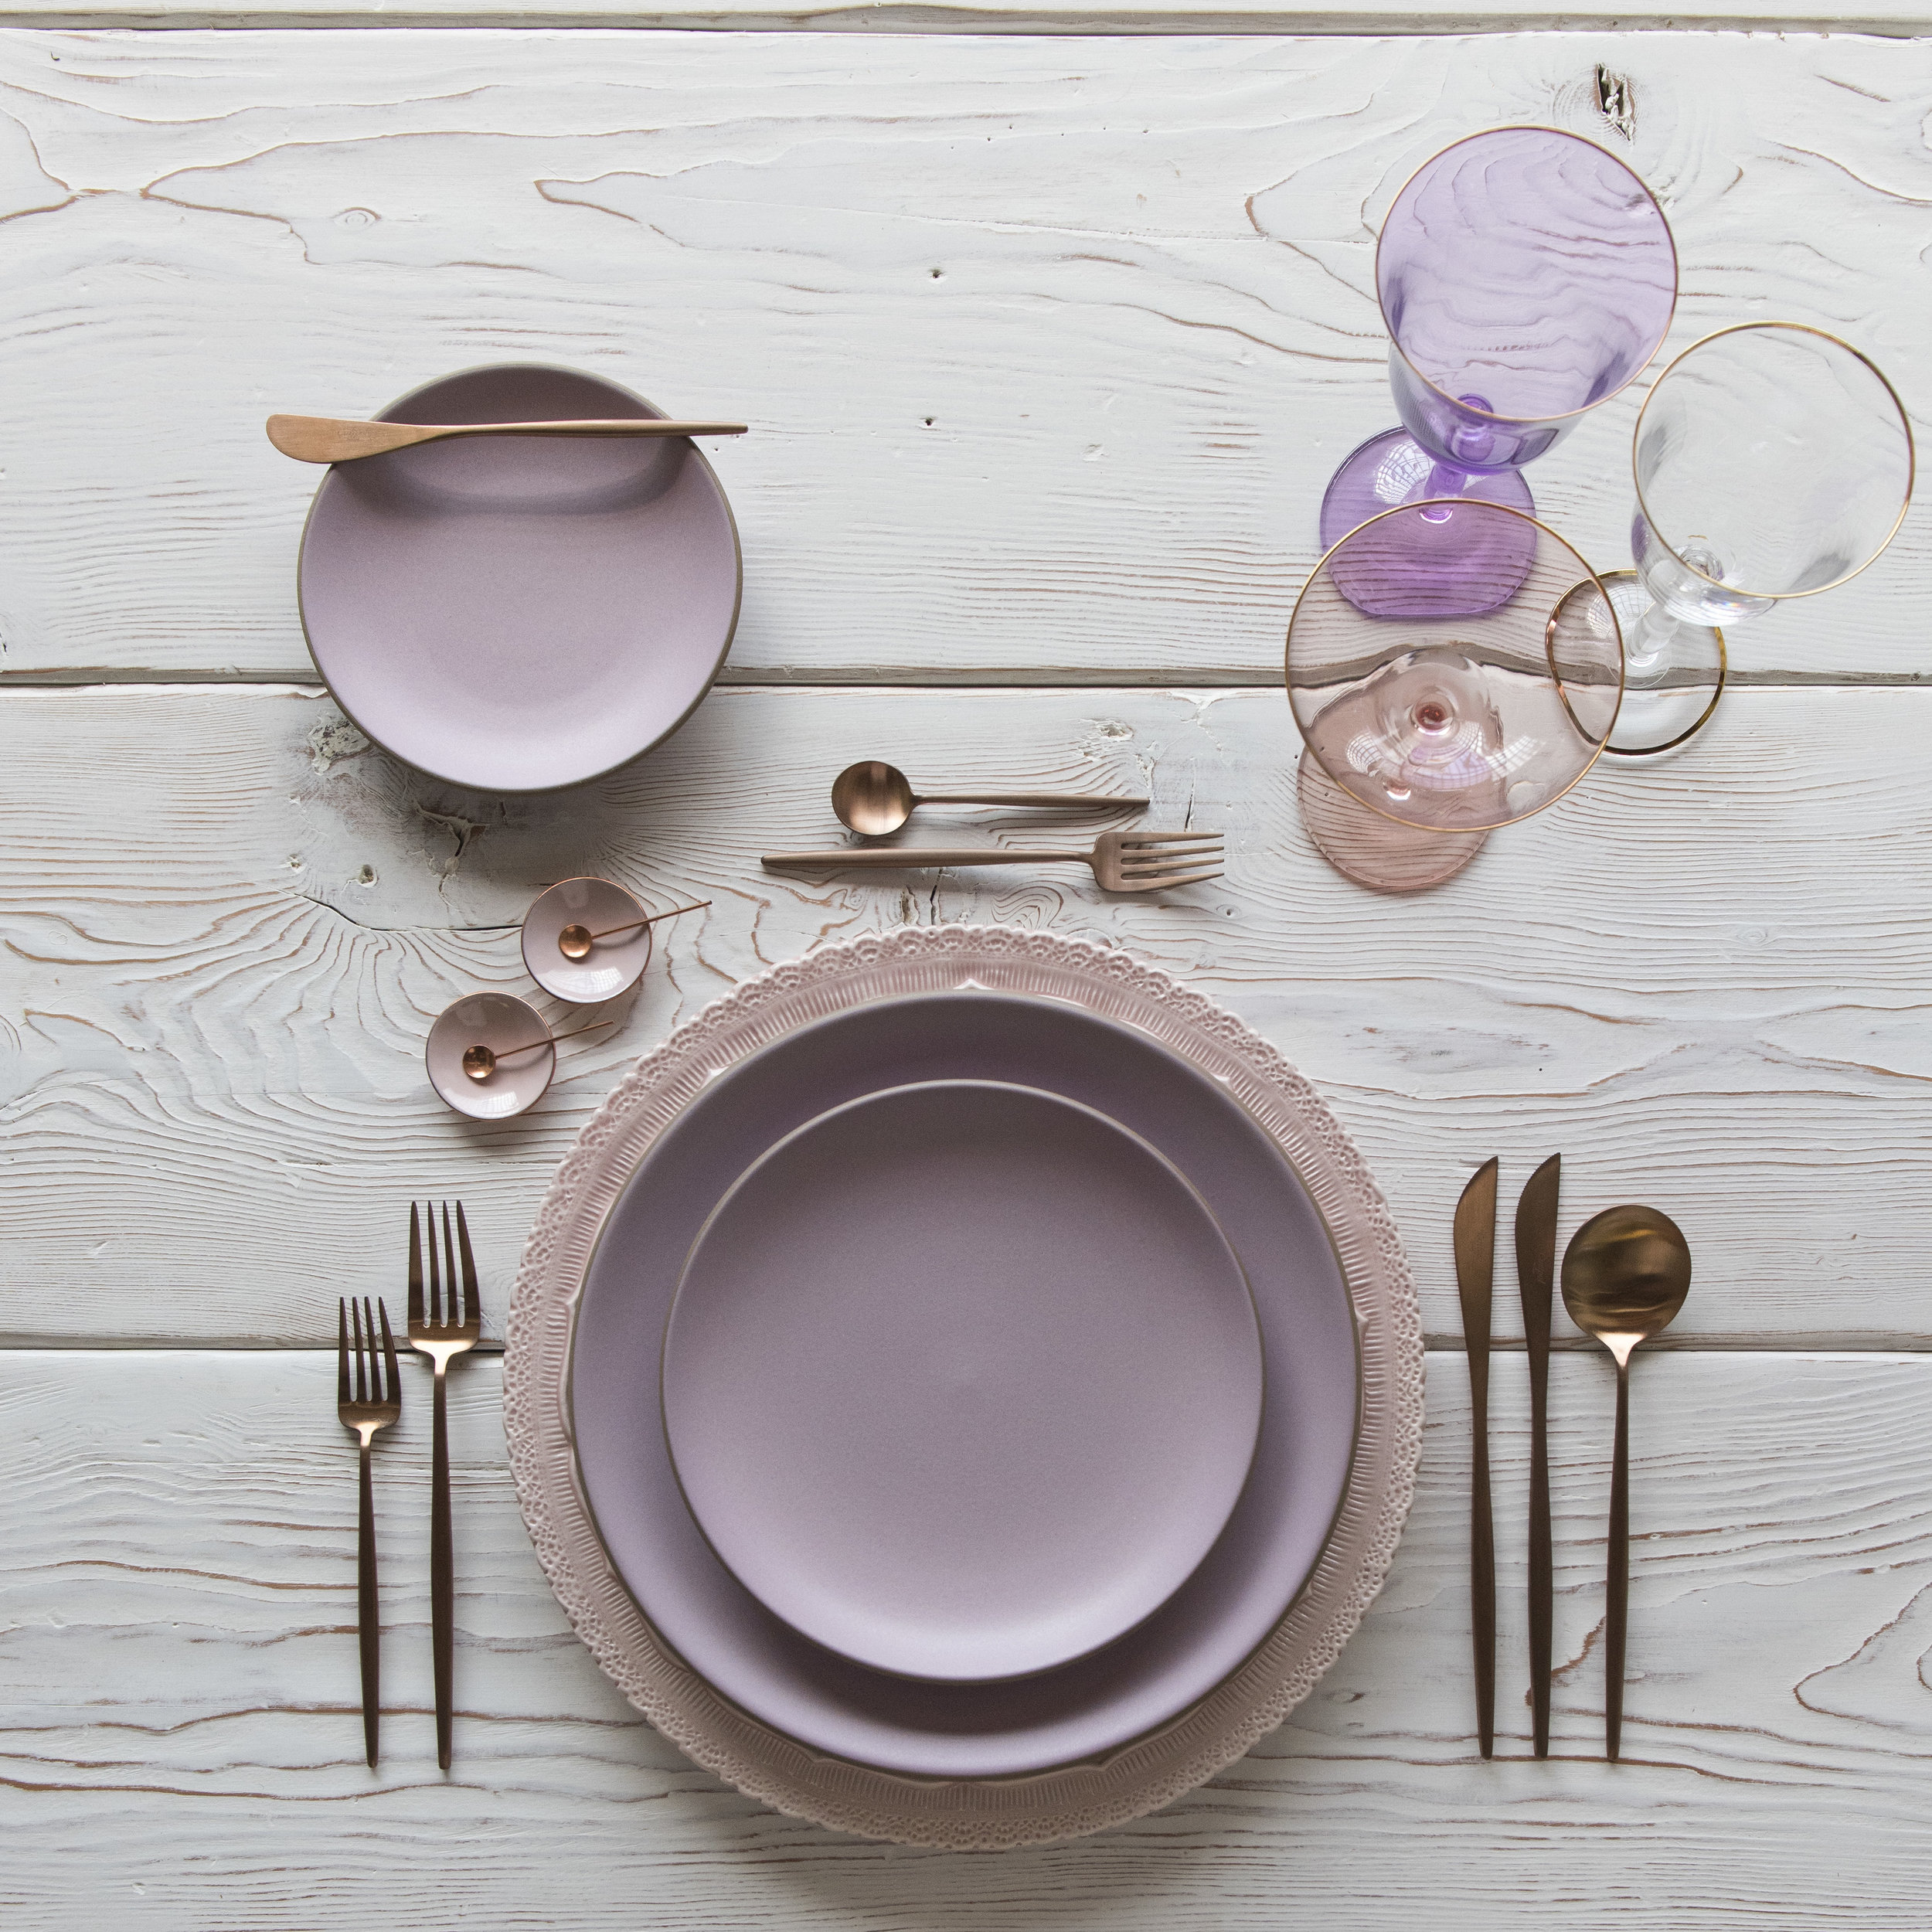 RENT: Lace Chargers in Blush + Custom Heath Ceramics in Wildflower + Moon Flatware in Brushed Rose Gold + Chloe 24k Gold Rimmed Stemware + Chloe 24k Gold Rimmed Goblet in Lilac + Bella 24k Gold Rimmed Stemware + Pink Enamel Salt Cellars + Tiny Copper Spoons  SHOP:Moon Flatware in Brushed Rose Gold + Chloe 24k Gold Rimmed Stemware + Bella 24k Gold Rimmed Stemware + Pink Enamel Salt Cellars + Tiny Copper Spoons